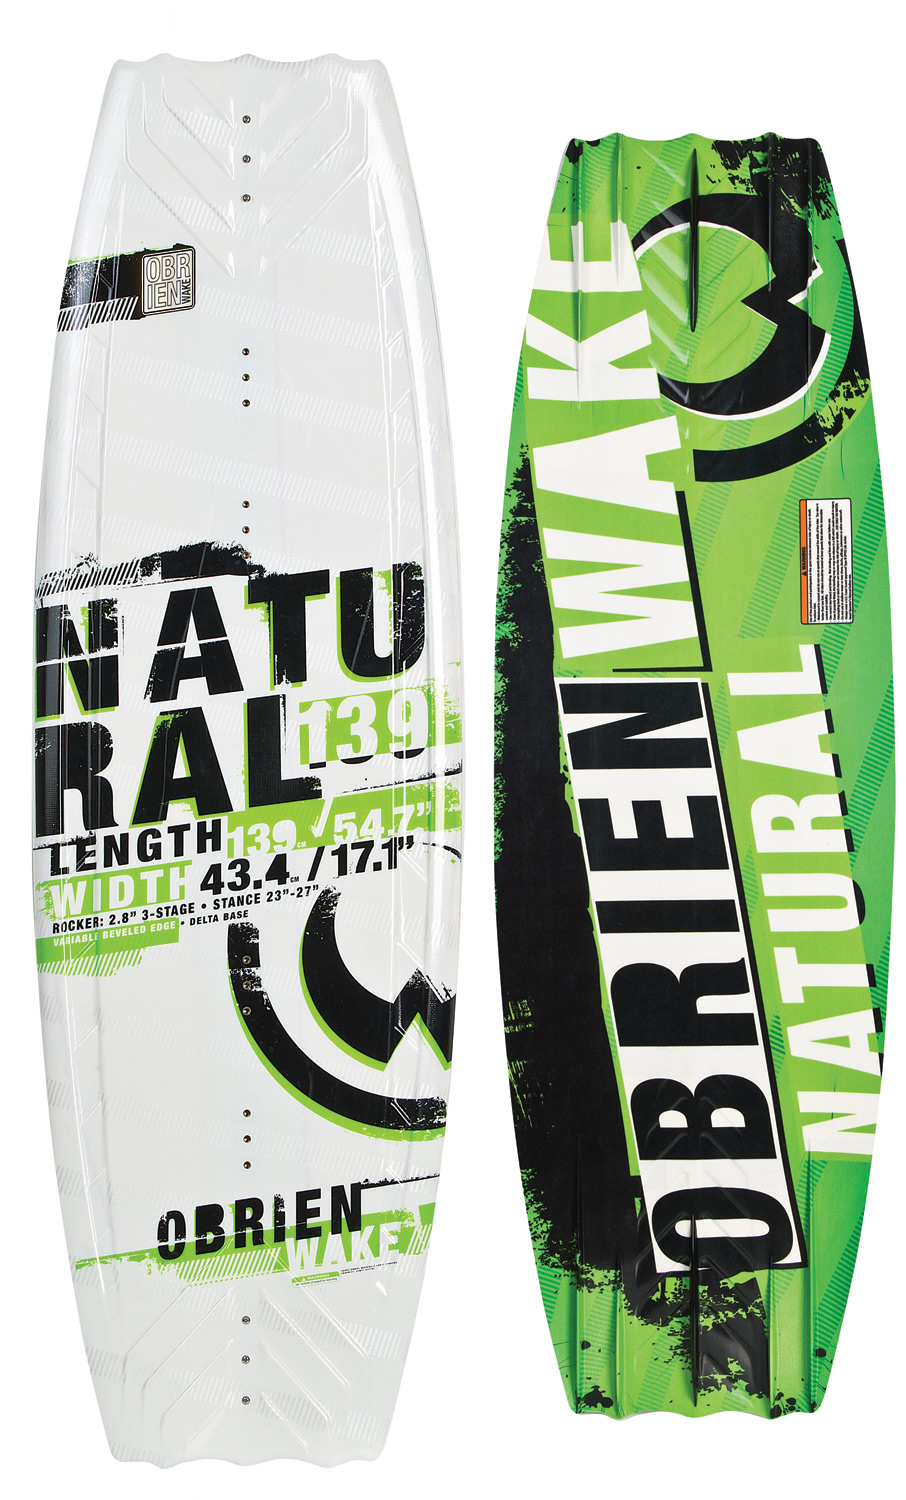 Wake The O'Brien Natural Wakeboard, a favorite of progressing riders and seasoned veterans! The Natural's full profile and wide tips are ideally suited to the rider who prefers a slightly tail-heavy approach to the wake. The blended 3-stage rocker kicks the tail into the wake, generating more vertical pop. The variable beveled edge and quad molded fins provide secure edging, even when not using the optional center fin. Have you witnessed O'Brien's proprietary Delta Base Technology in action? The Natural started the Delta revolution that creates a fast, smooth ride over all water conditions. The O'Brien Natural Wakeboard, one ride is all it takes!This board has some minor cosmetic defects-nothing that affects the performance Wakeboard Binding CompatabilityCan accomodate bindings with a 6 inch binding plate found here. Can only accommodate a single mounting position option for Liquid Force bindings with a 8 inch binding plate and offers two positions for all other vendors found here. - $237.95